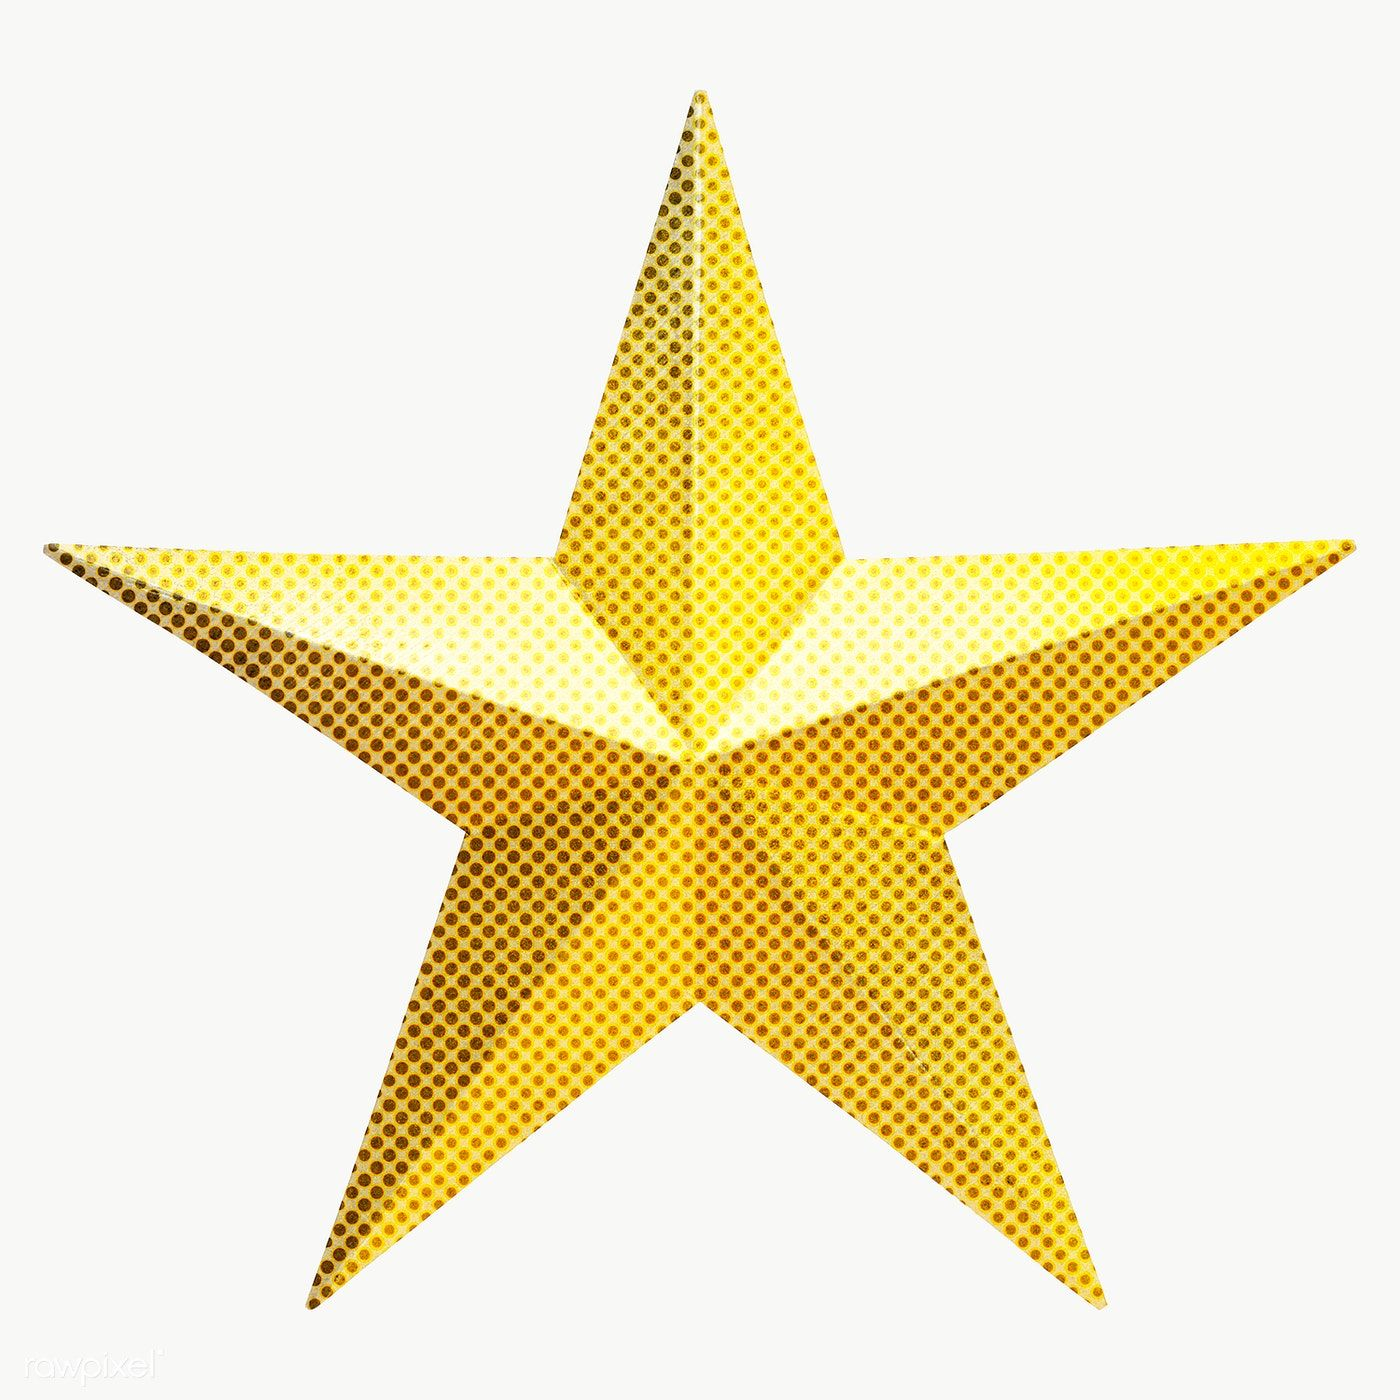 Yellow Star Social Media Icon Social Ads Template Transparent Png Premium Image By Rawpixel Com Aum Social Media Icons Social Media Icons Vector Media Icon